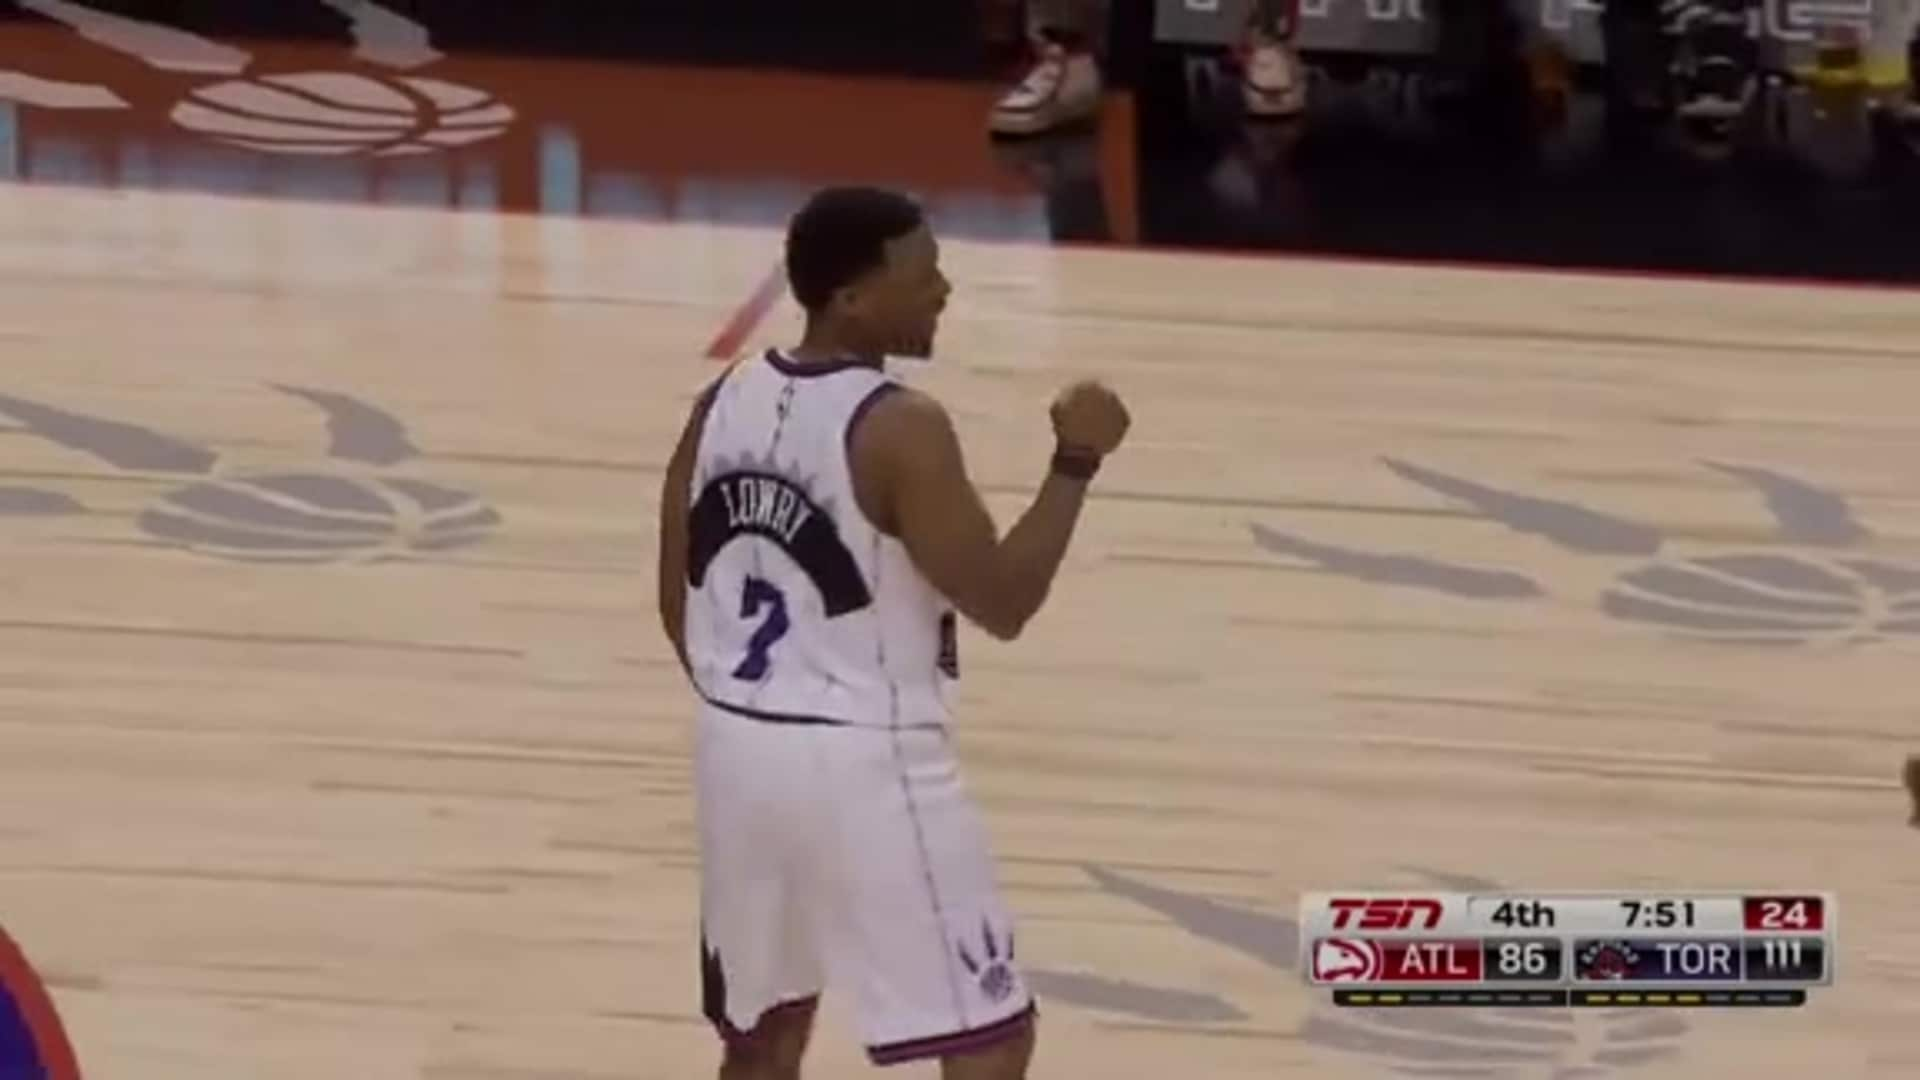 Raptors Highlights: Lowry Franchise Assist Record - January 28, 2020